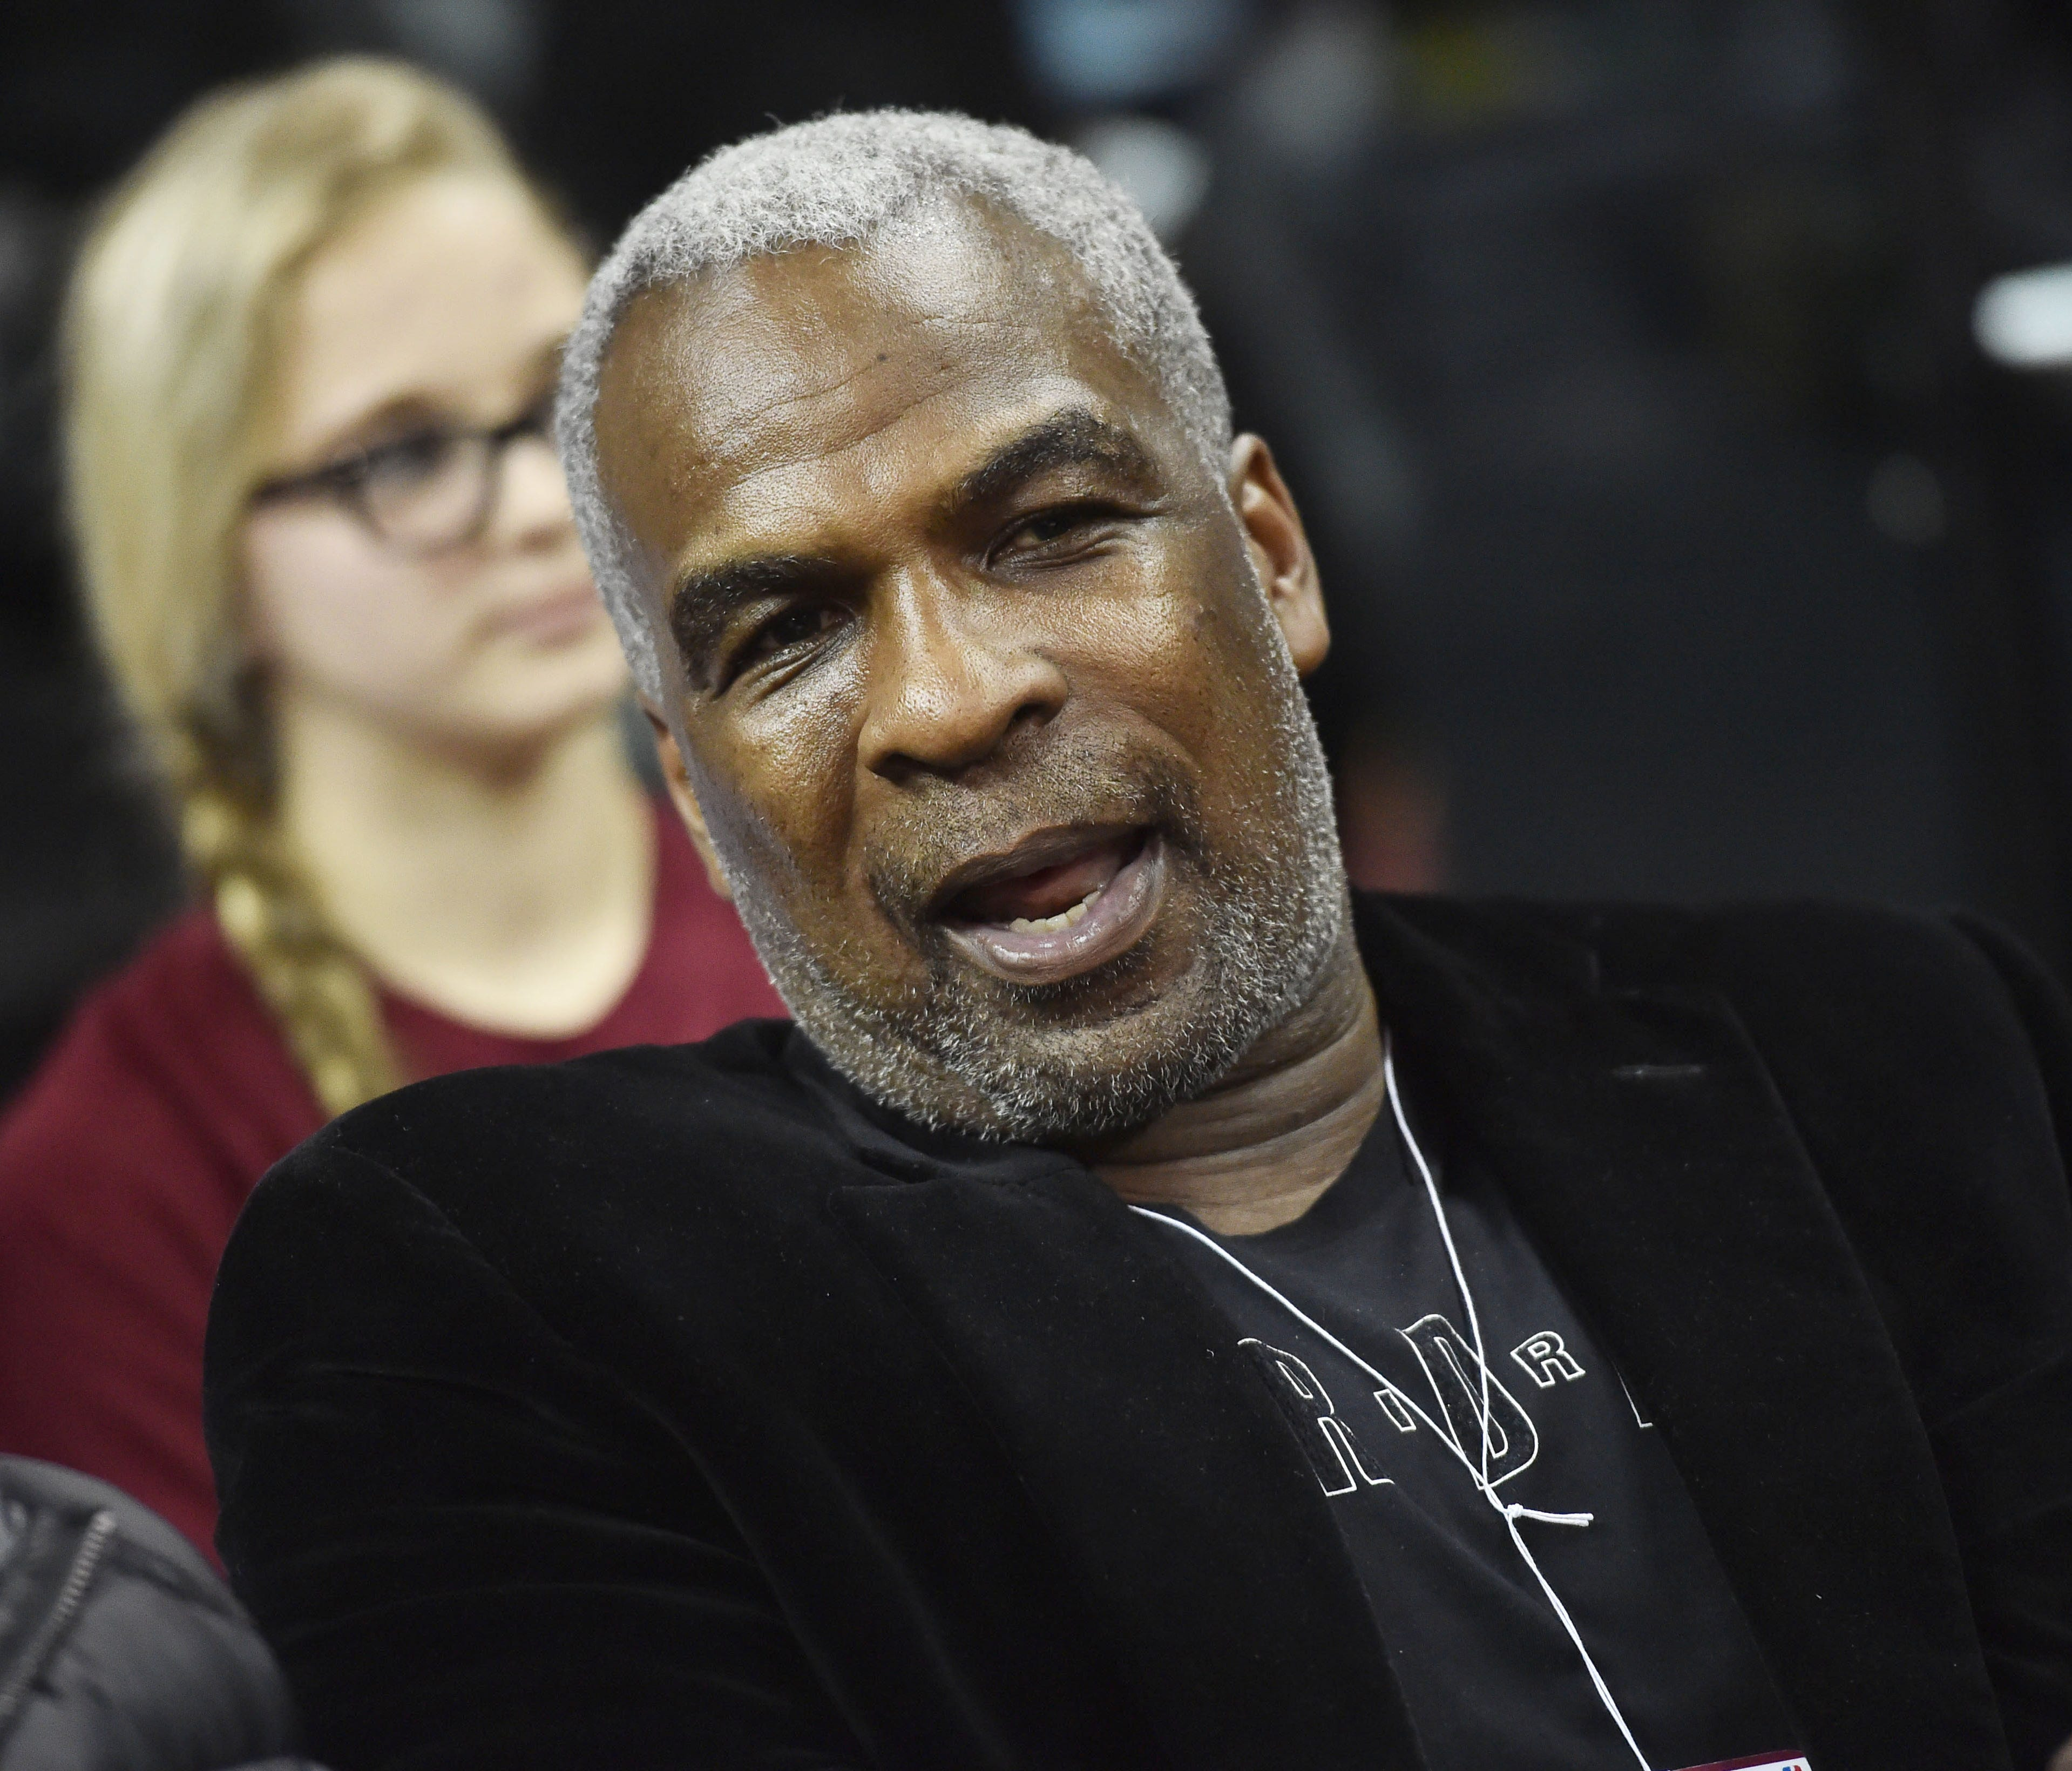 Former New York Knicks player Charles Oakley will make his debut in the Big3 this weekend.